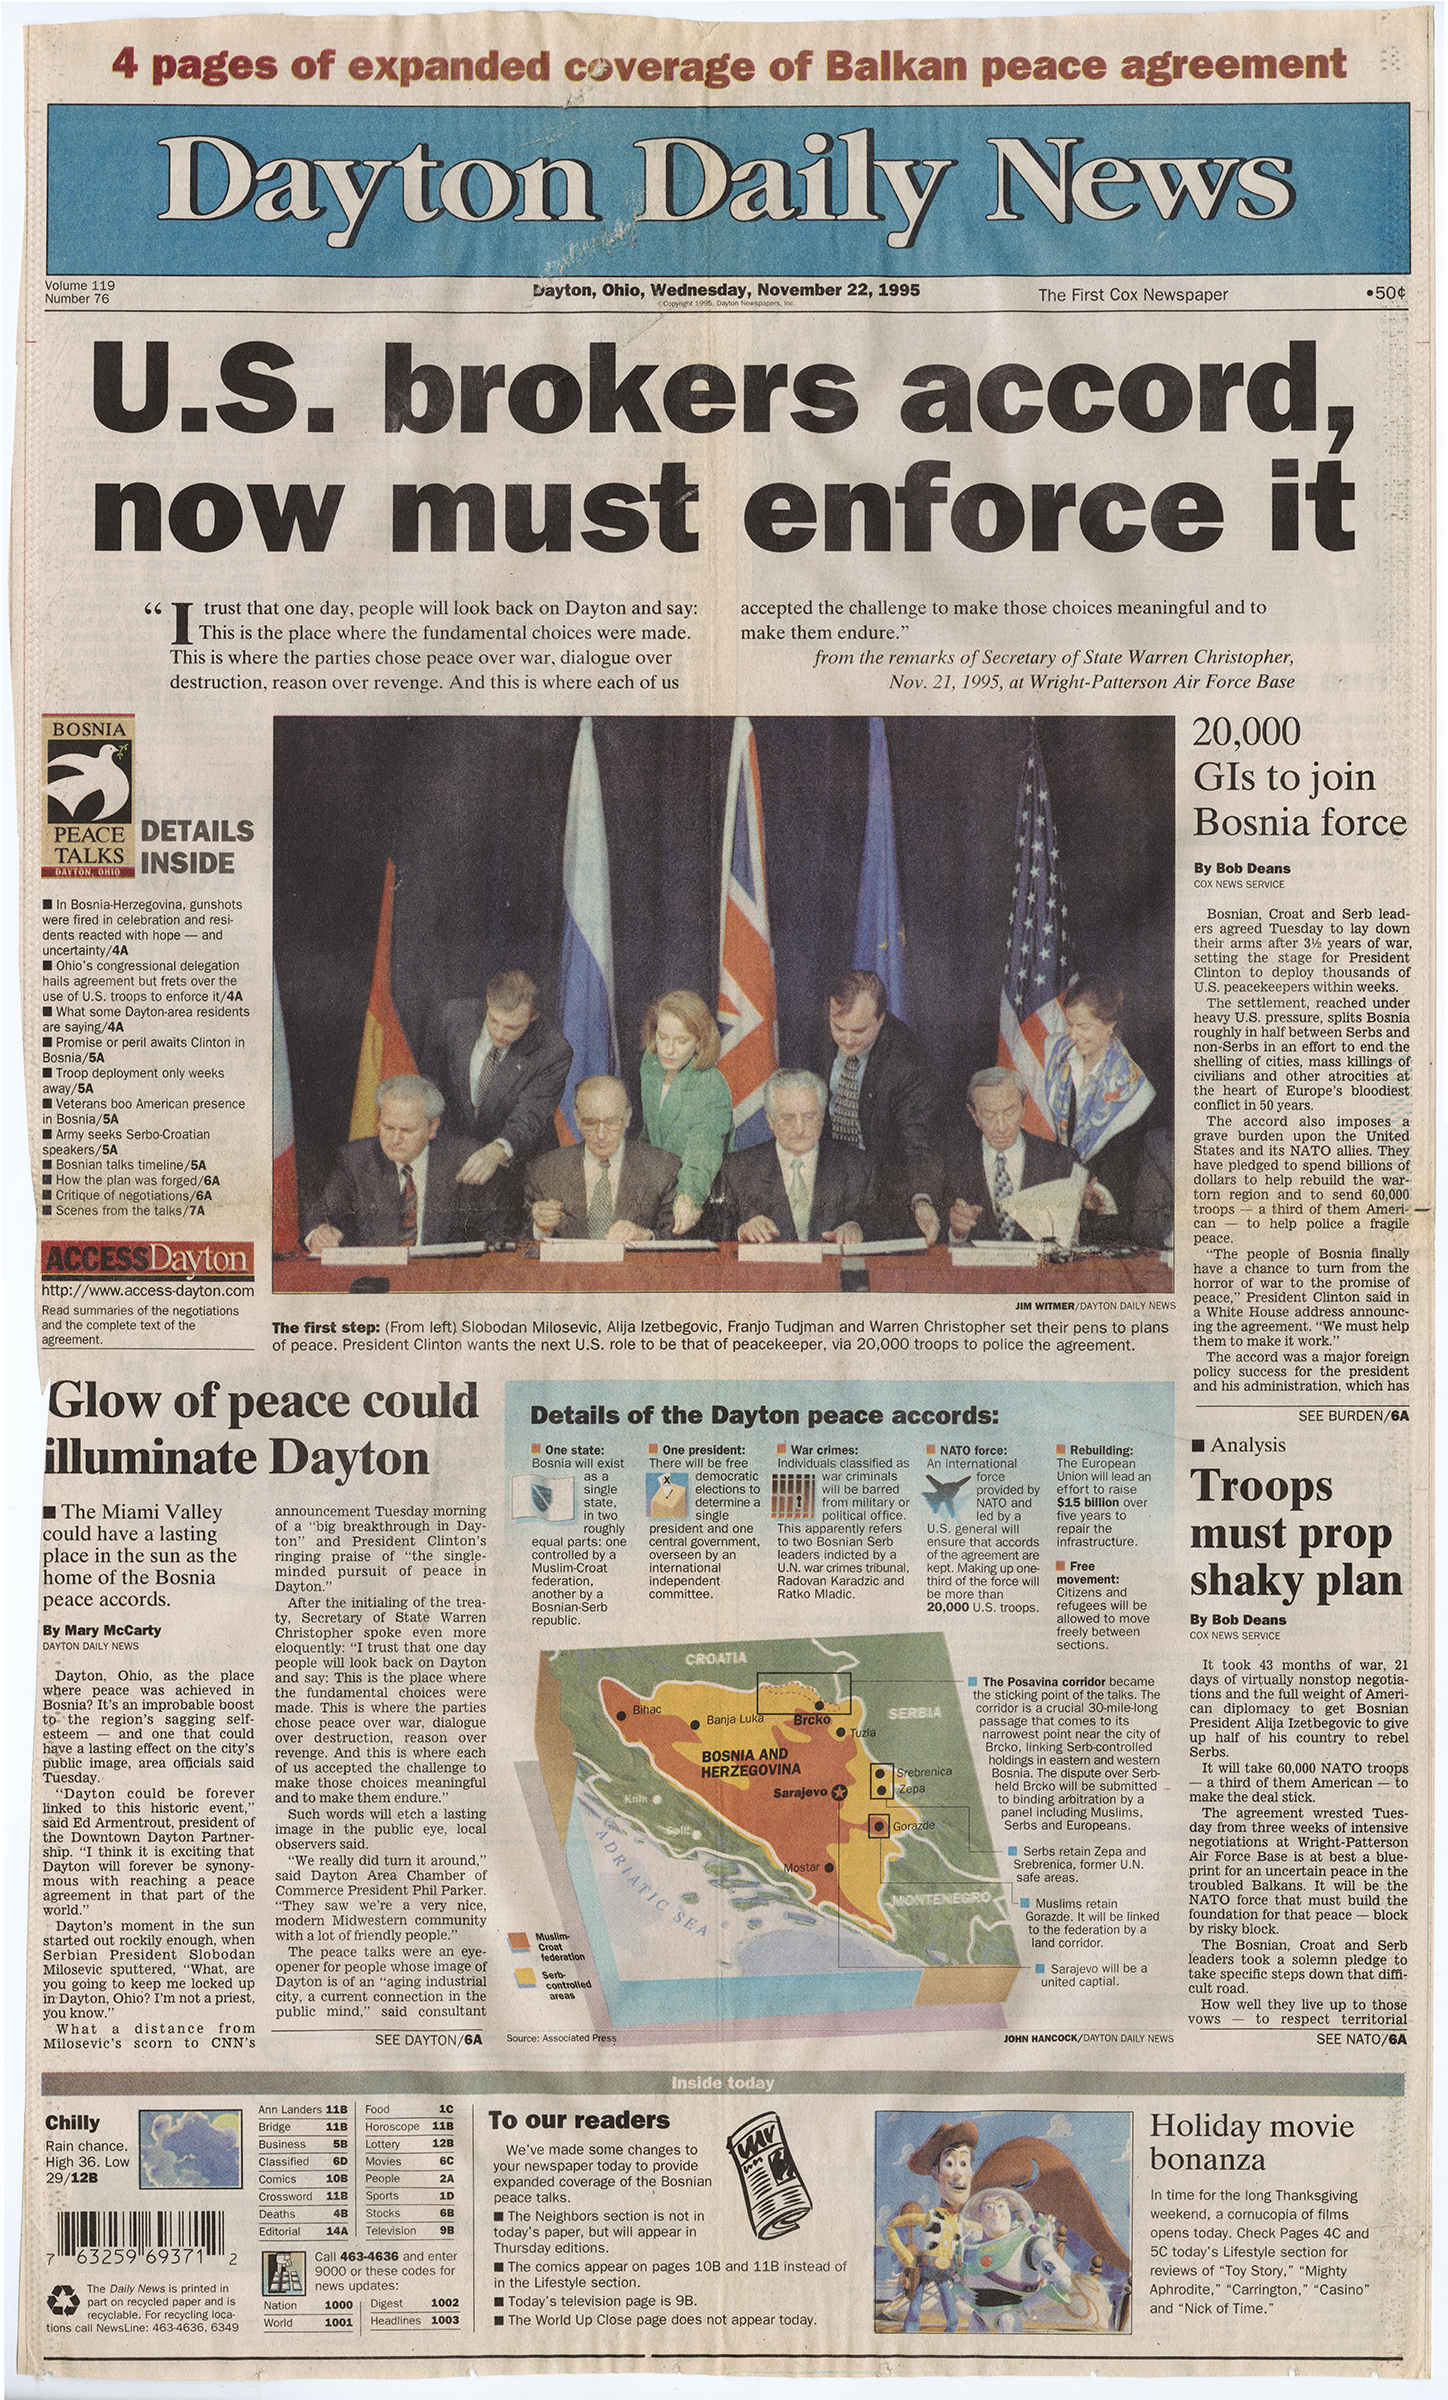 """U.S. Brokers Accord, Now Must Enforce It,"" Dayton Daily News, November 21, 1995, page 11, from MS-411"